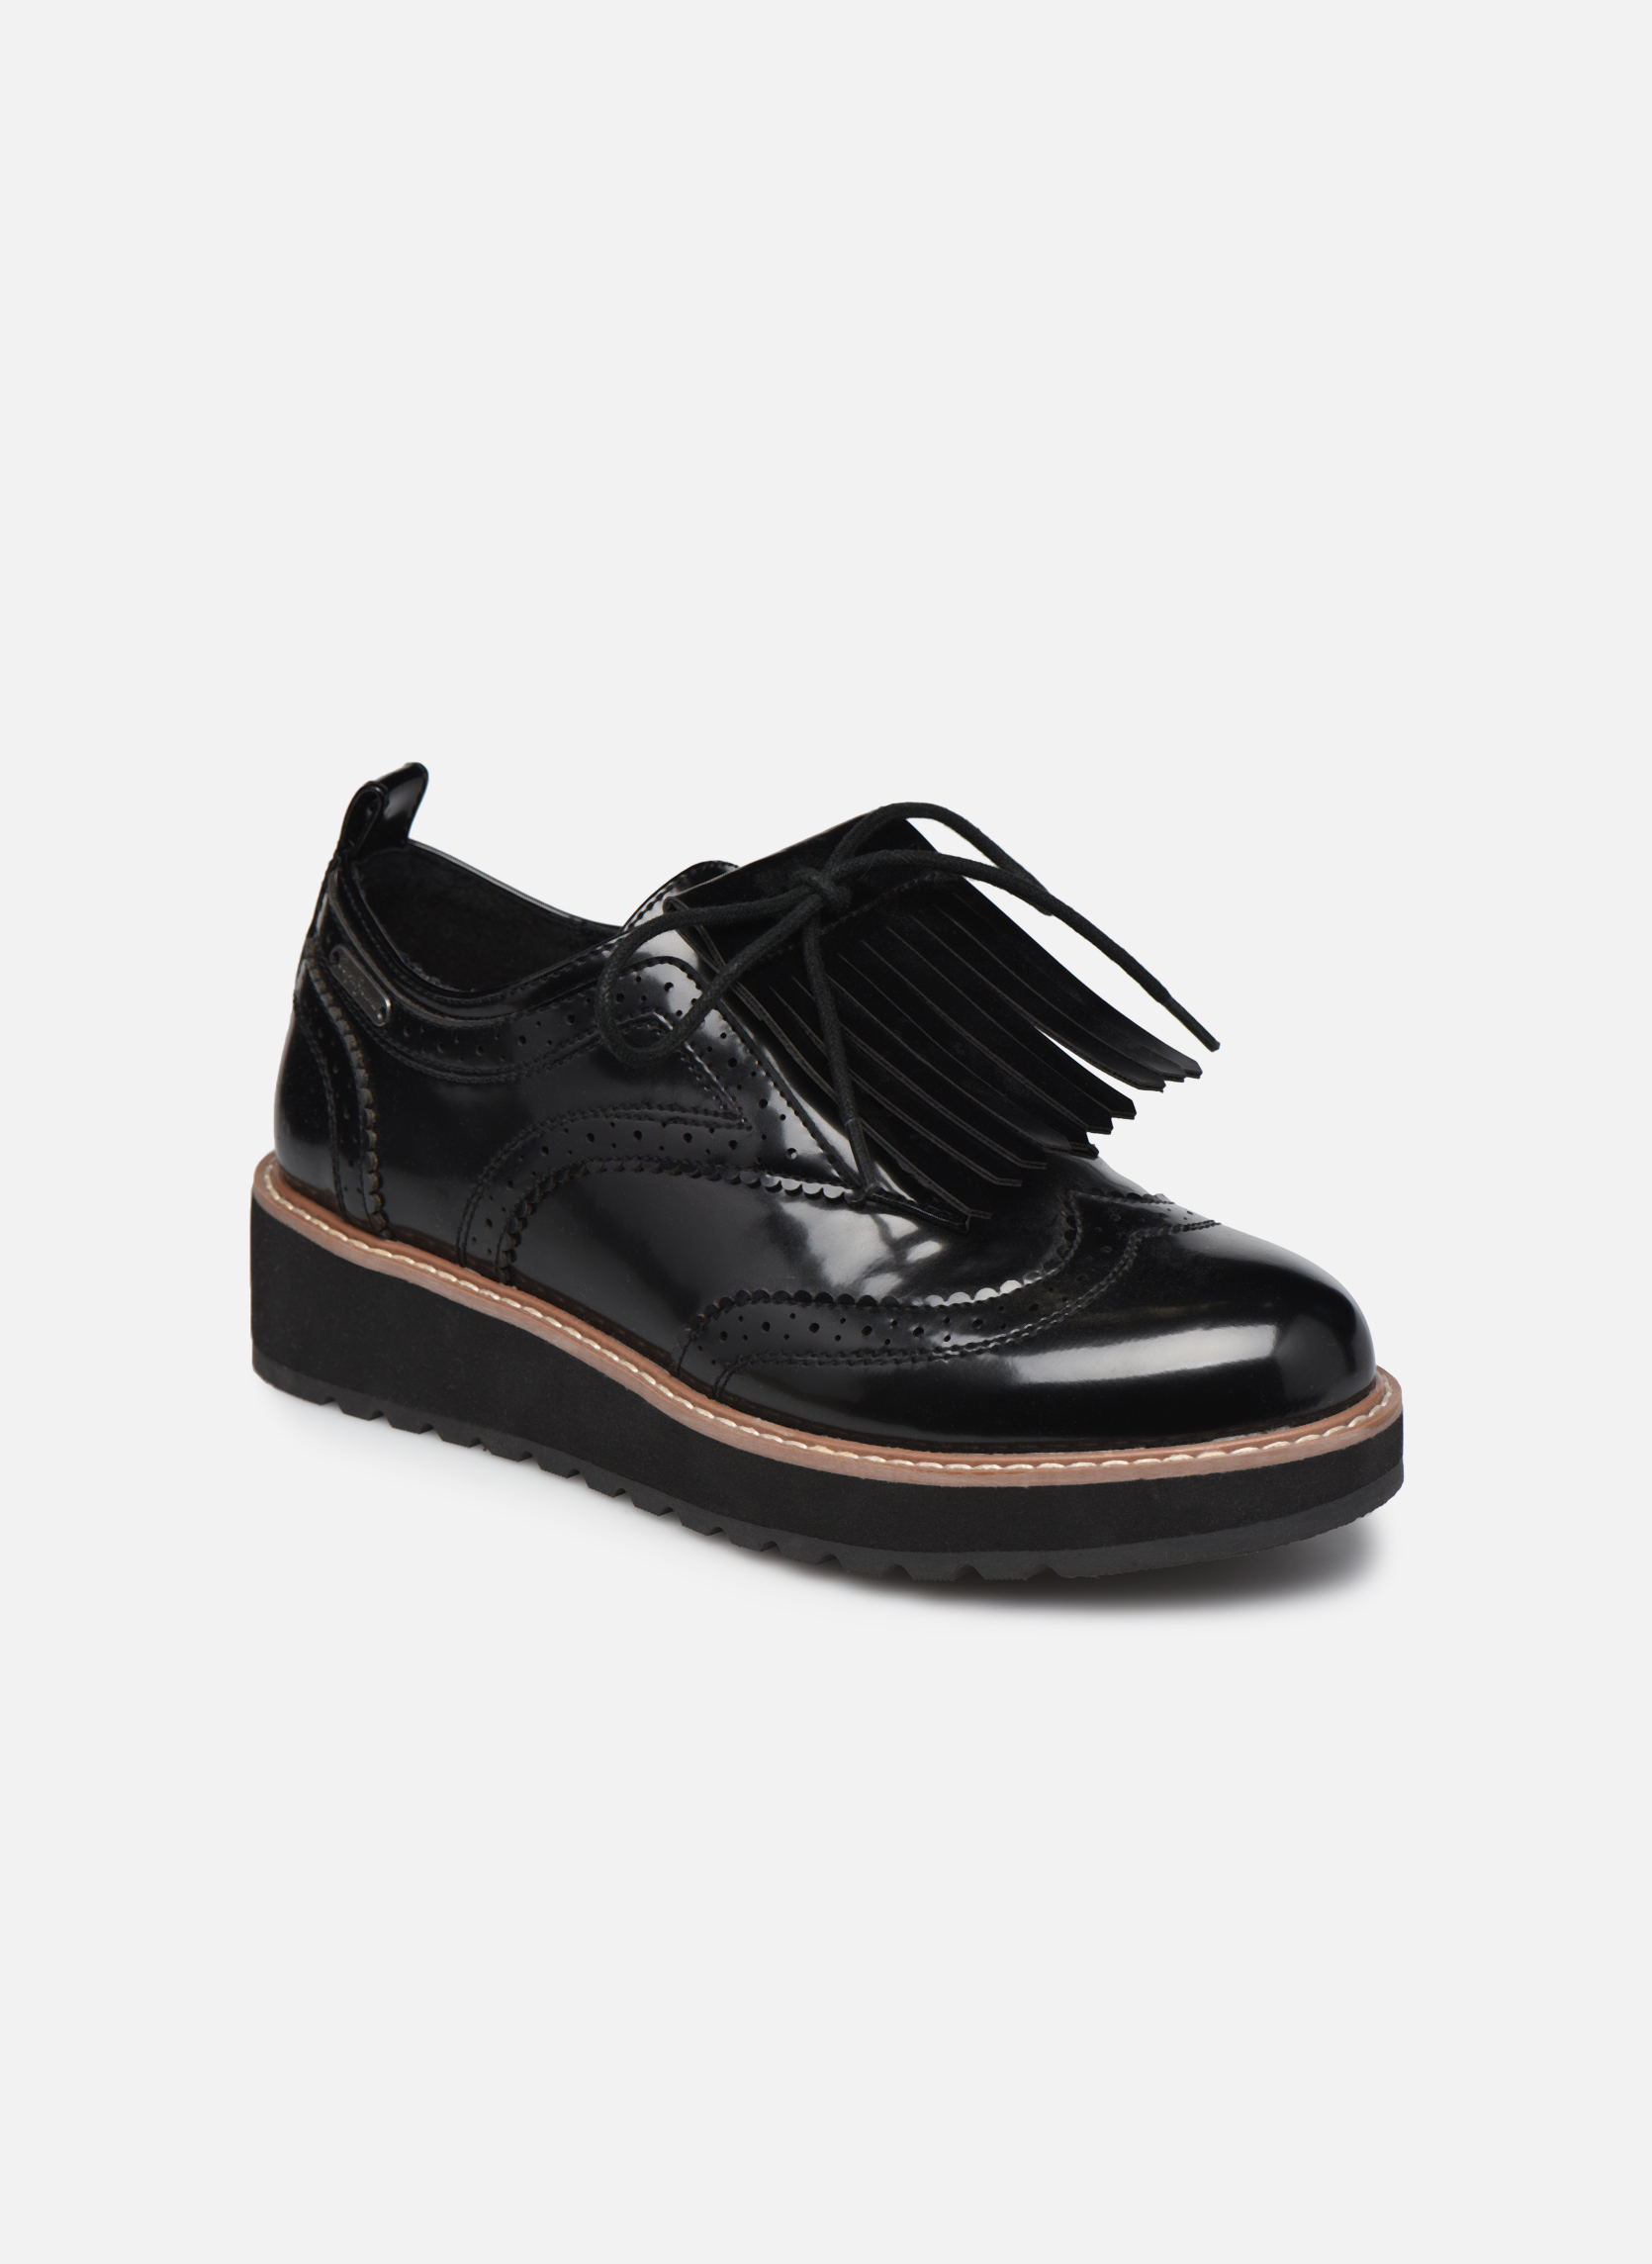 Chaussures à lacets Femme RAMSY tassel